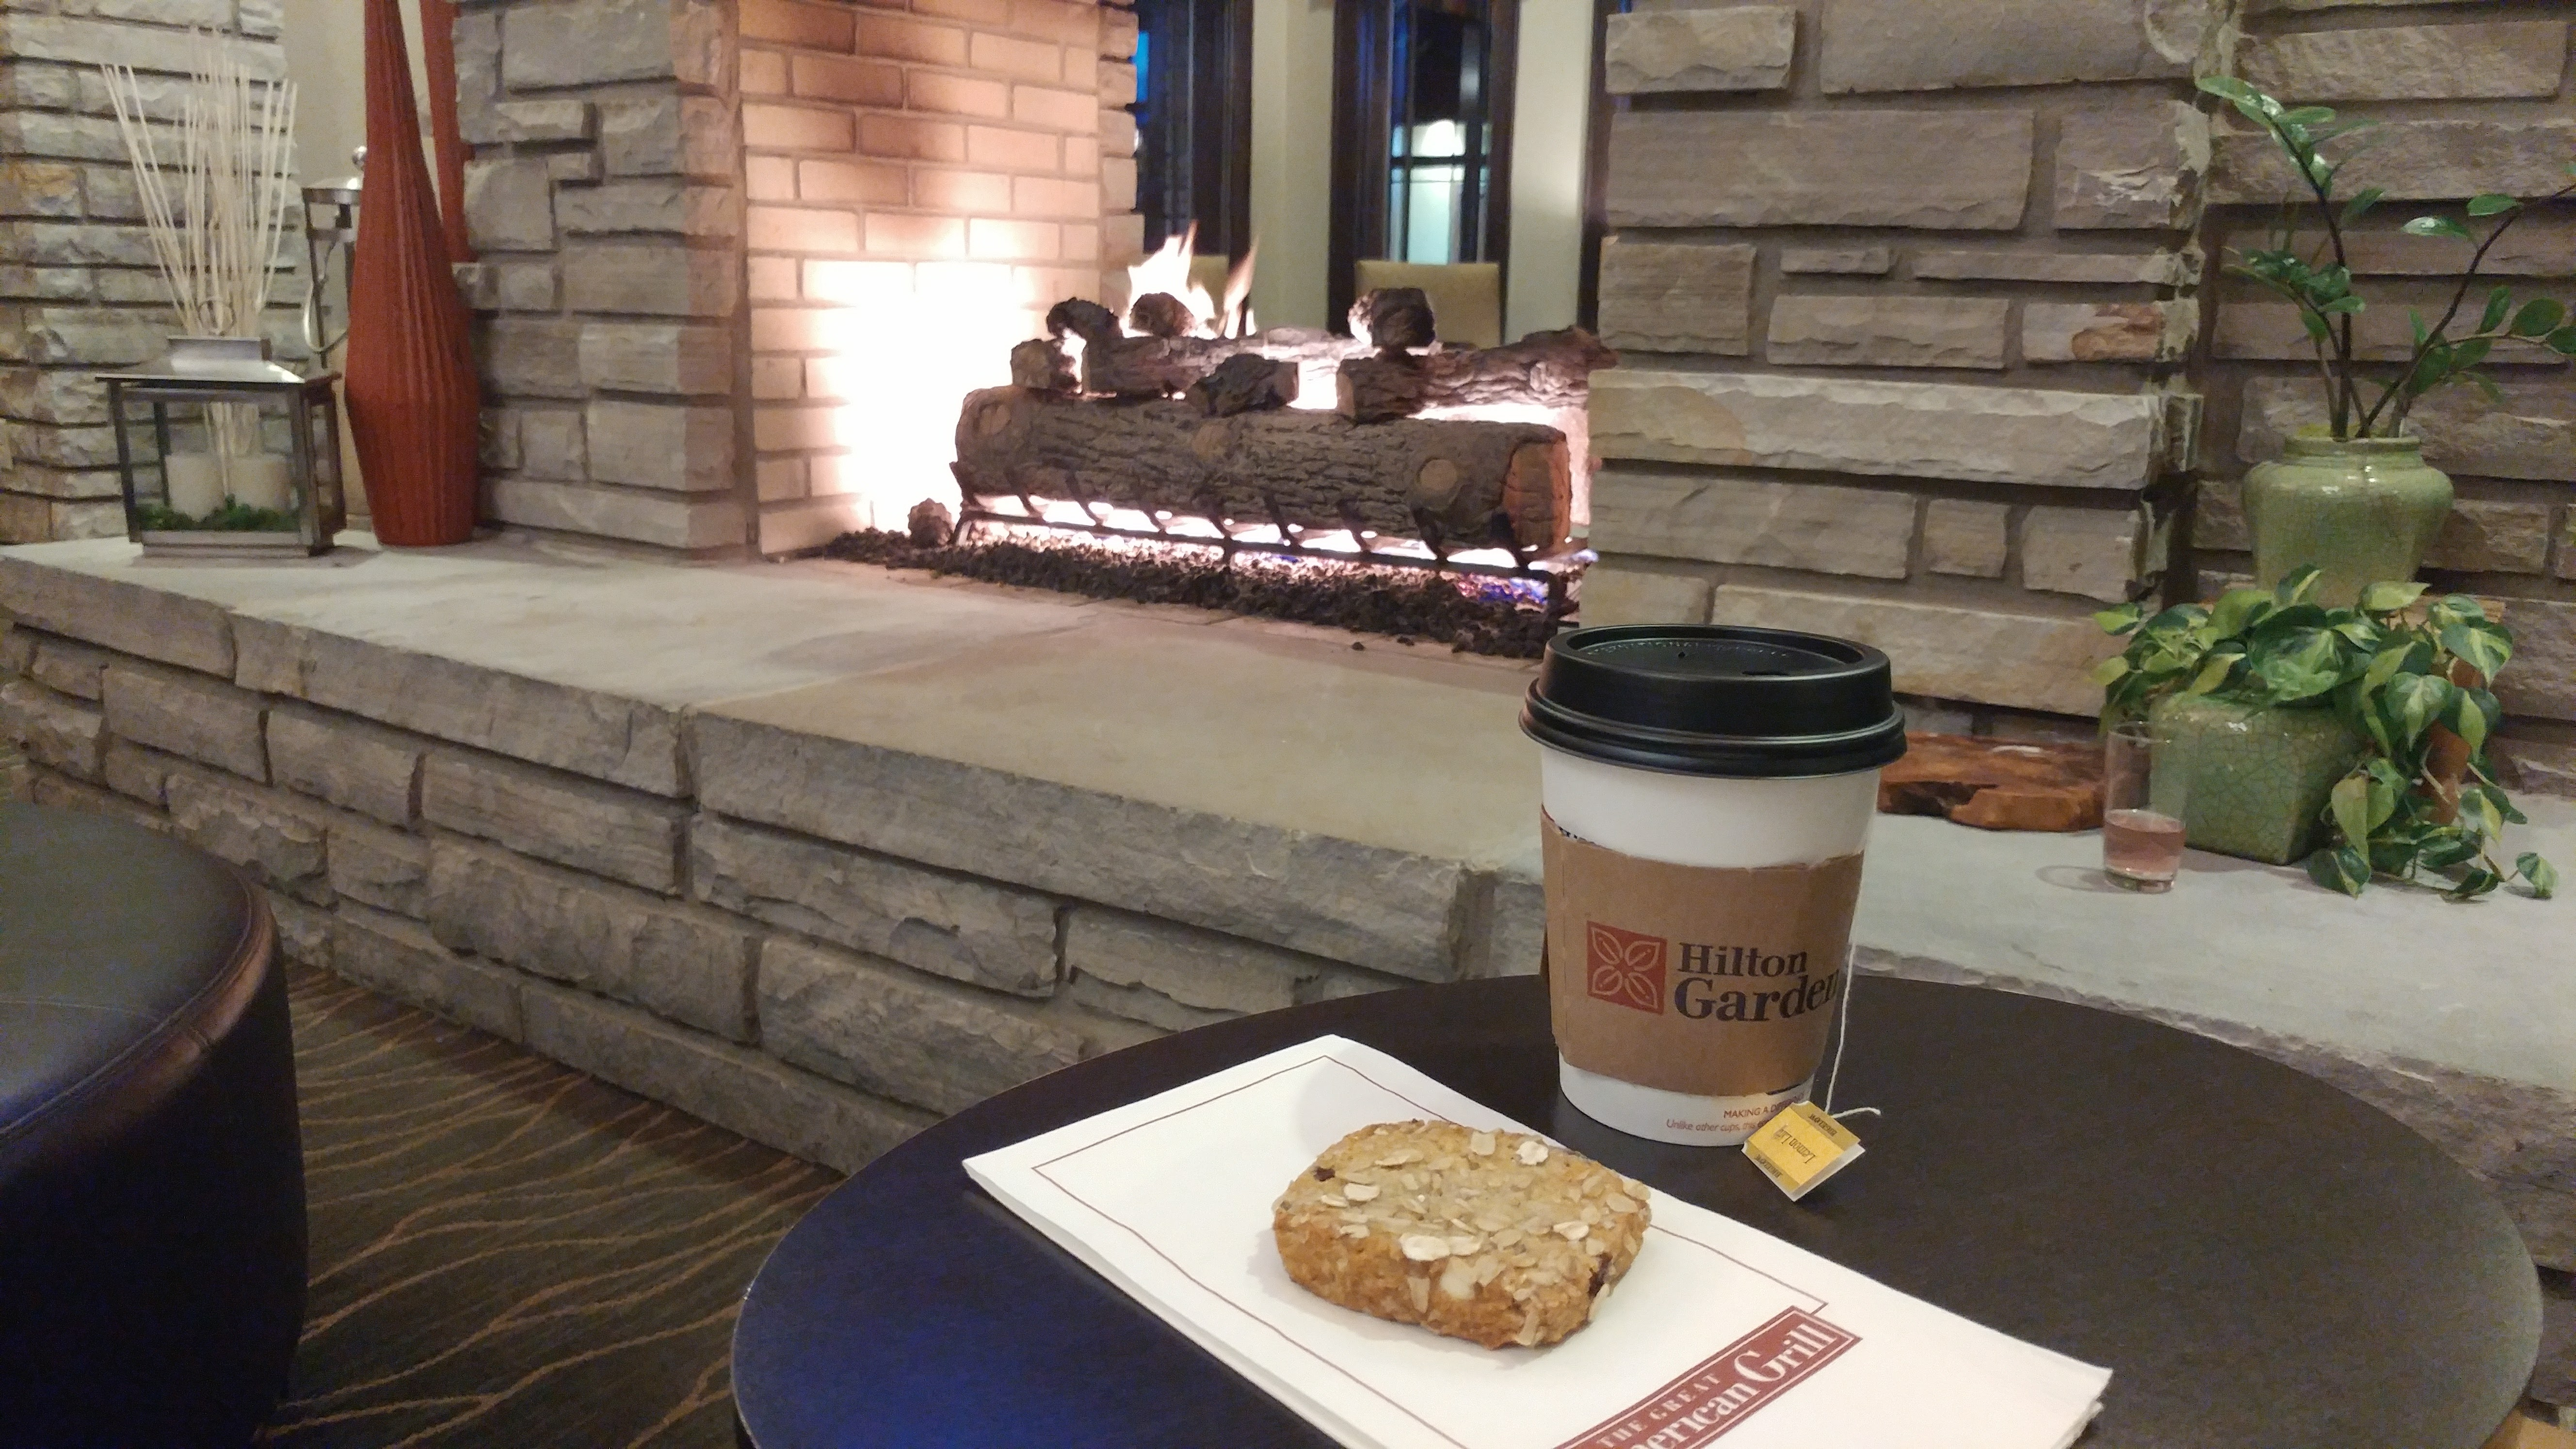 The Hilton Garden Inn in Gatlinburg, TN offered the perfect way to spend a chilly evening - with complimentary snacks and beverages by a cozy fire.